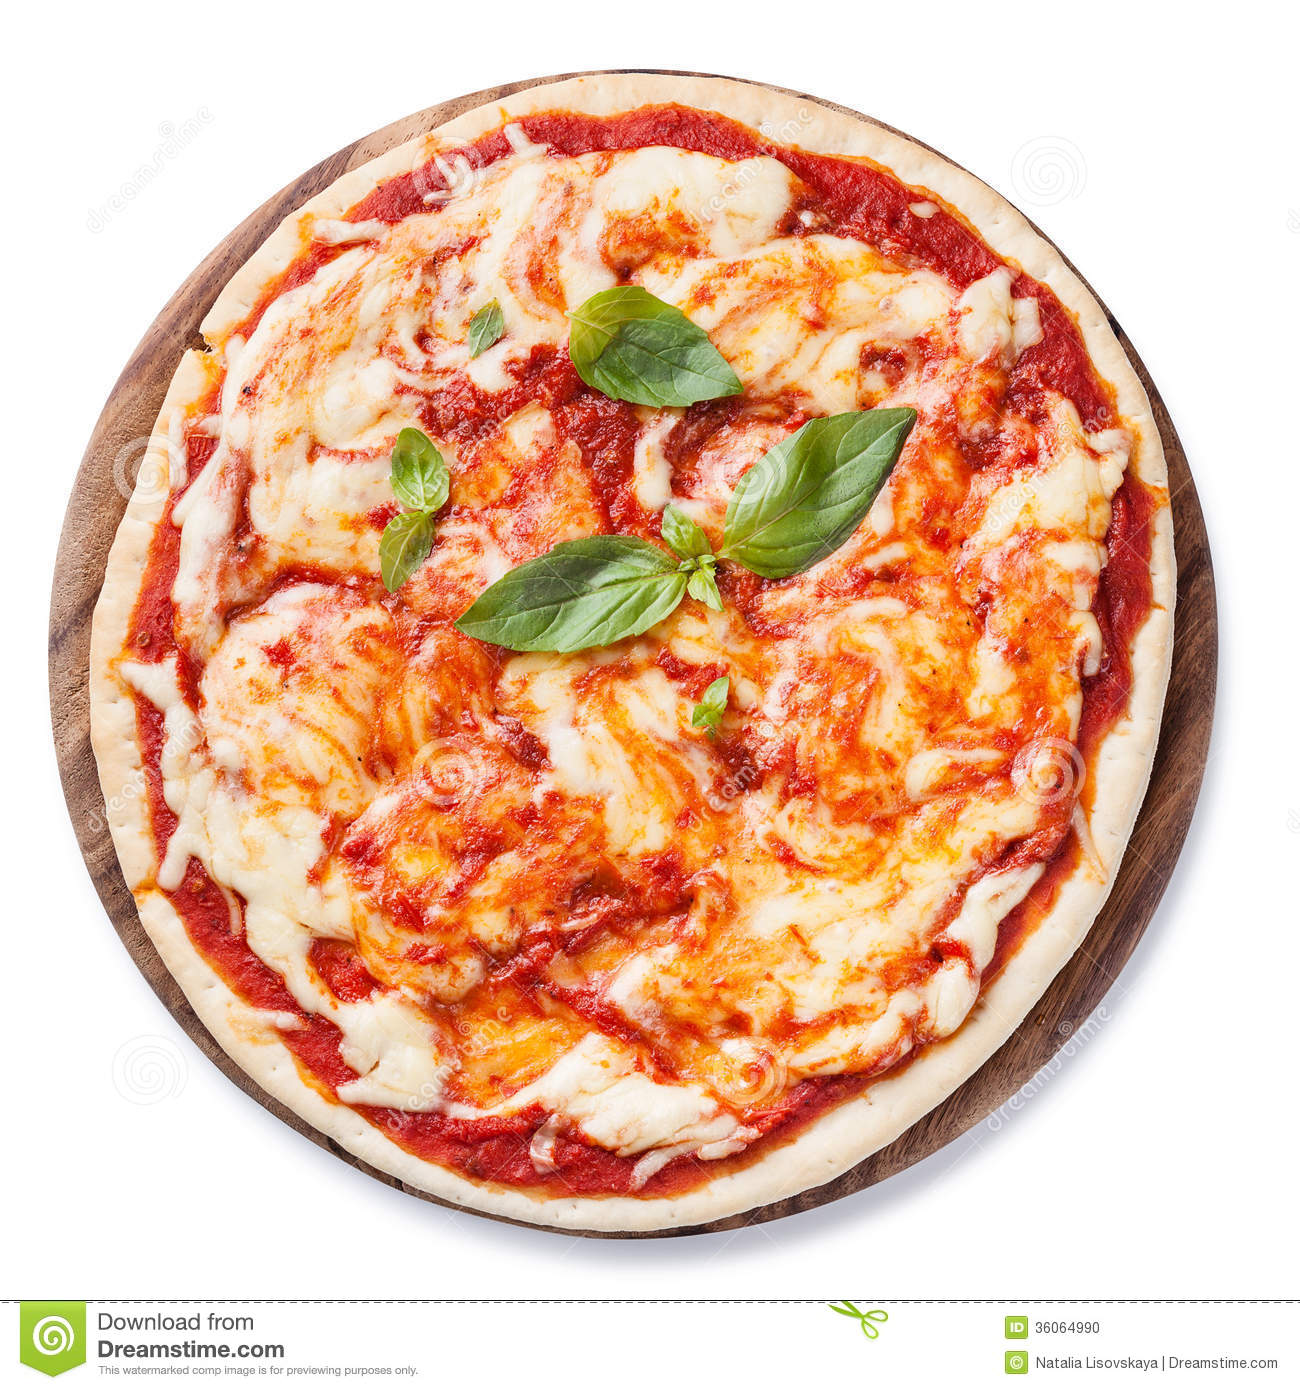 Pizza Margarita Stock Photo Image 36064990